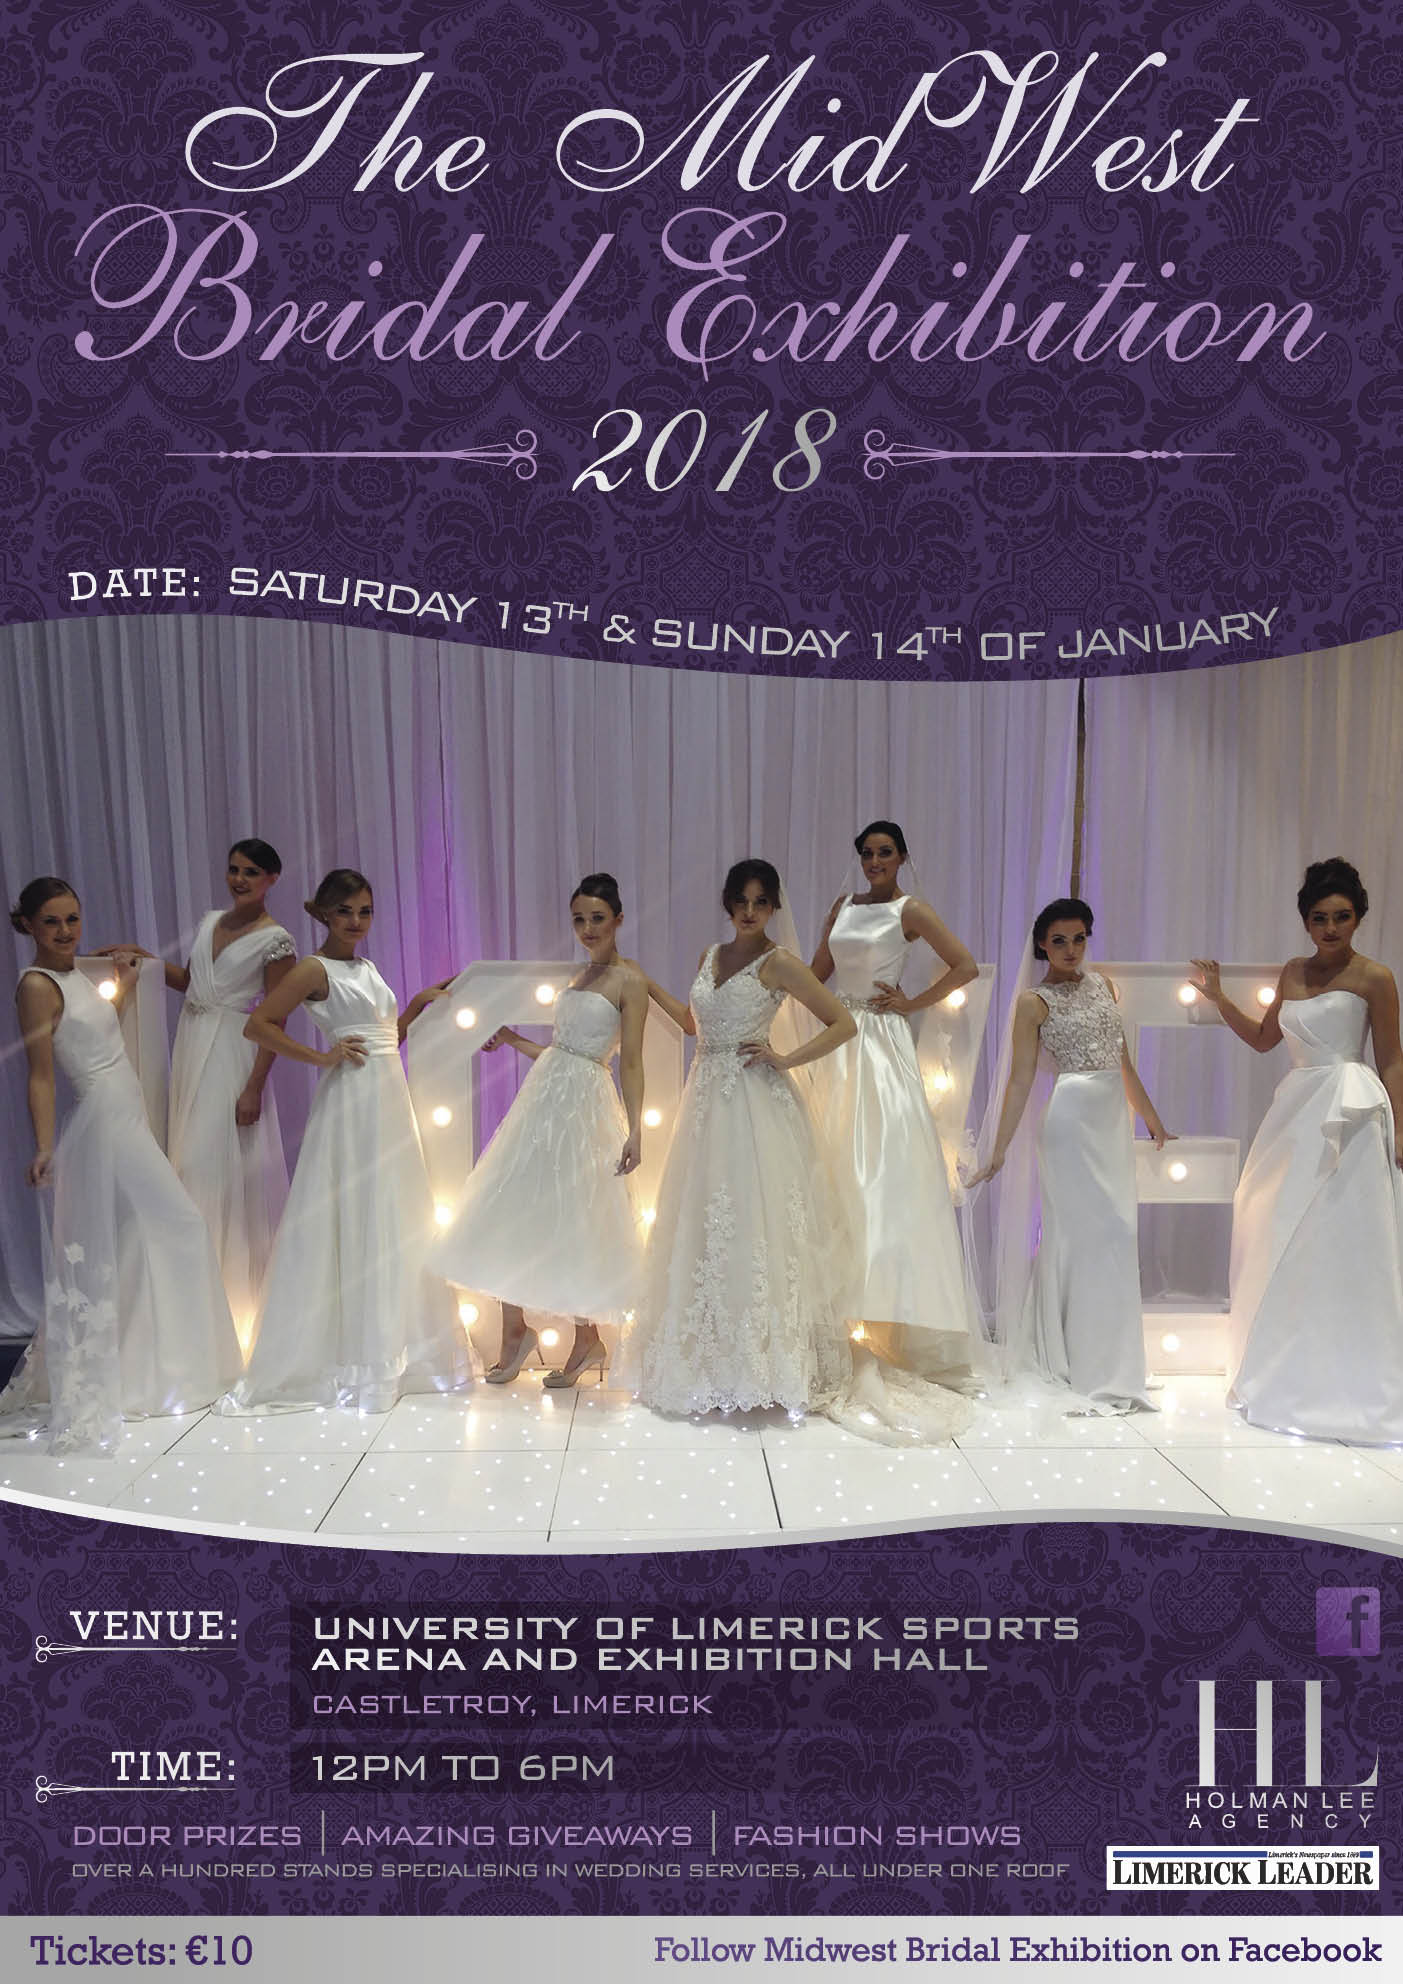 The MidWest Bridal Exhibition 2018 - The Holman Lee Agency